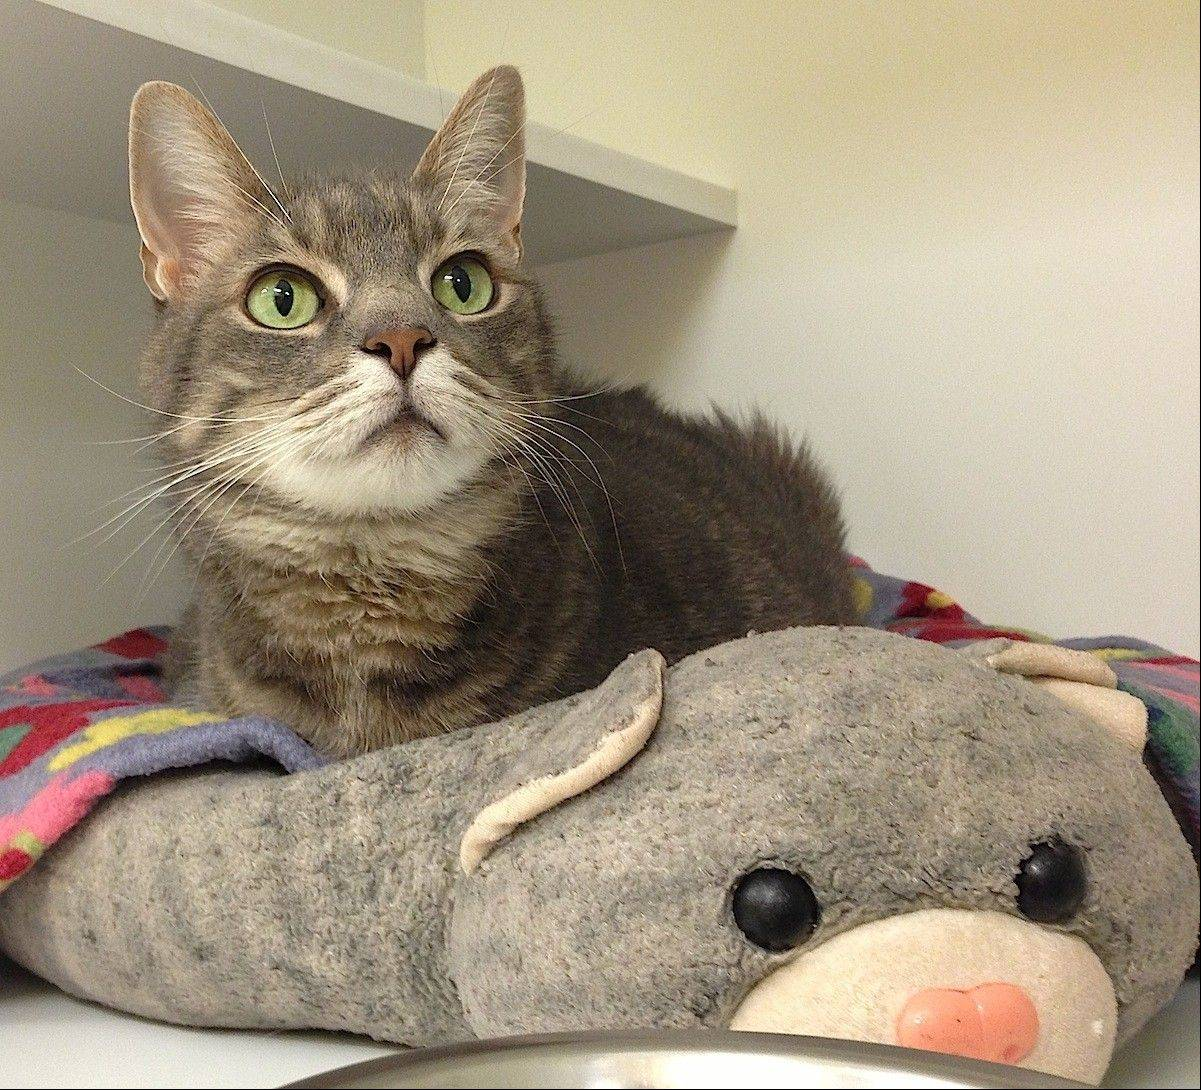 Chachi, a domestic, gray, tabby, is about 8 years old, very sweet and loves people.